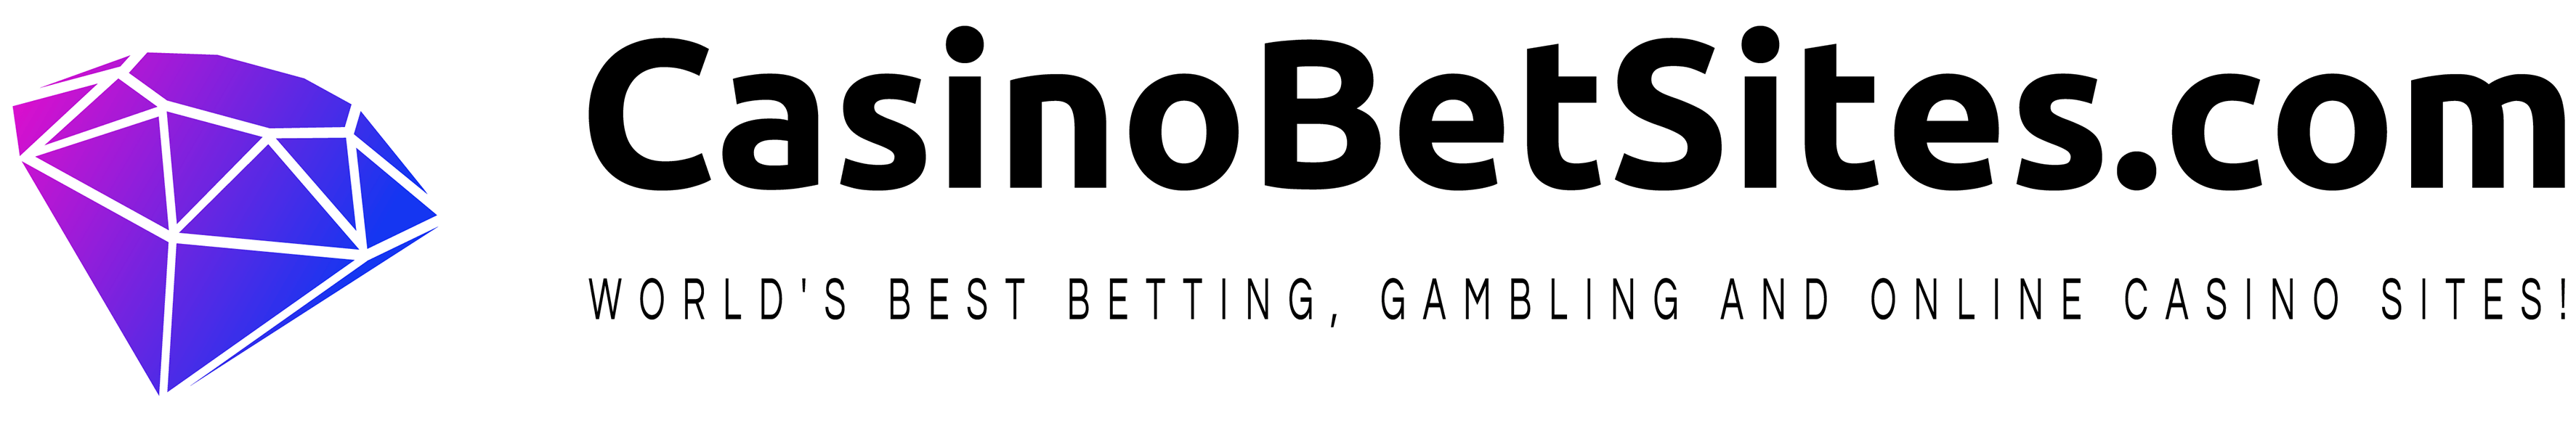 CasinoBetSites.com